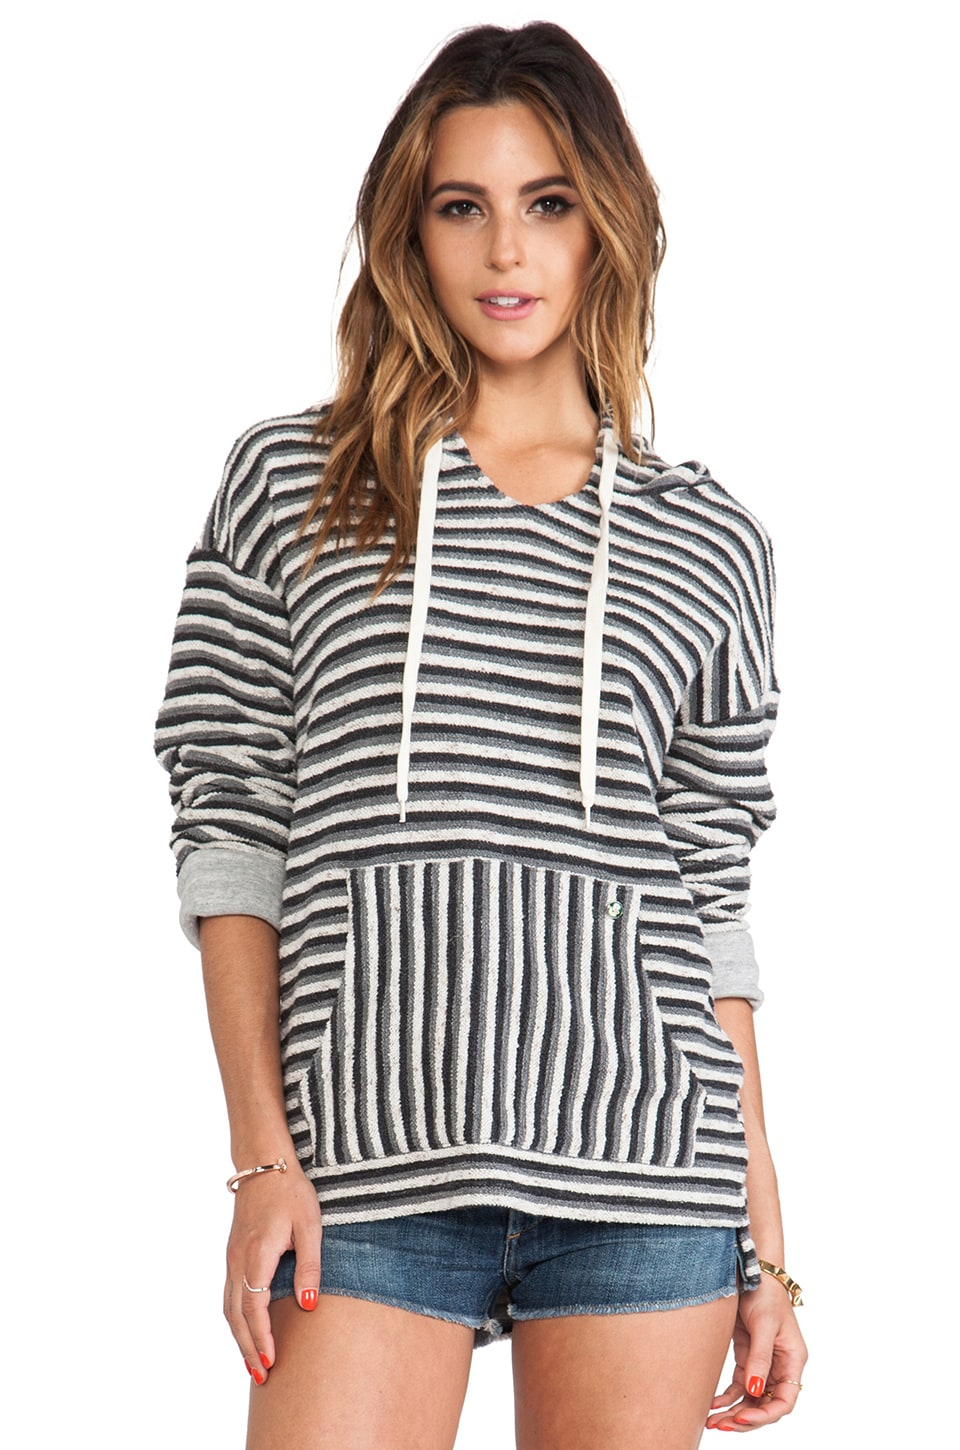 EVER Ensenada Poncho in Grey & Black Stripe